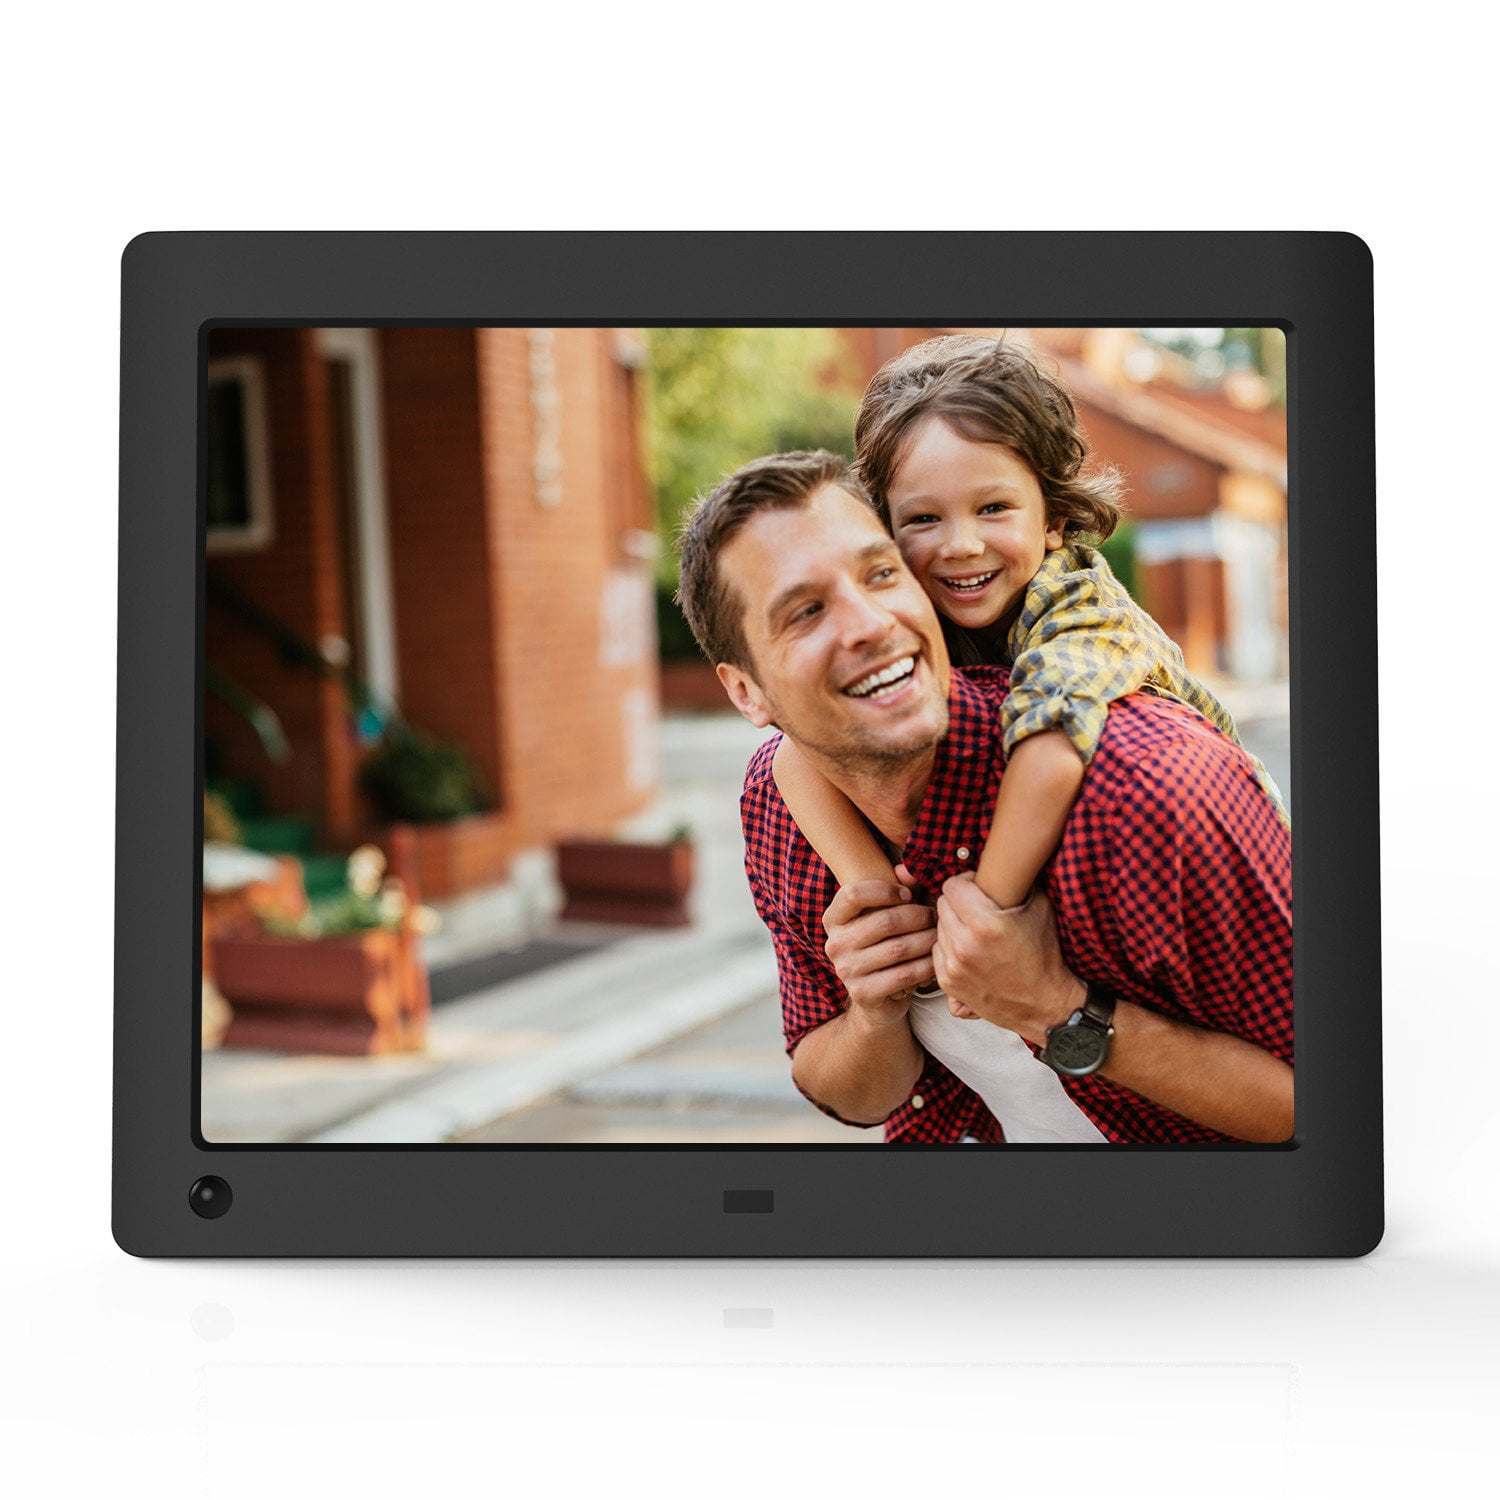 NIX Advance 15 inch Digital Photo & HD Video Frame (X15D) - Walmart.com